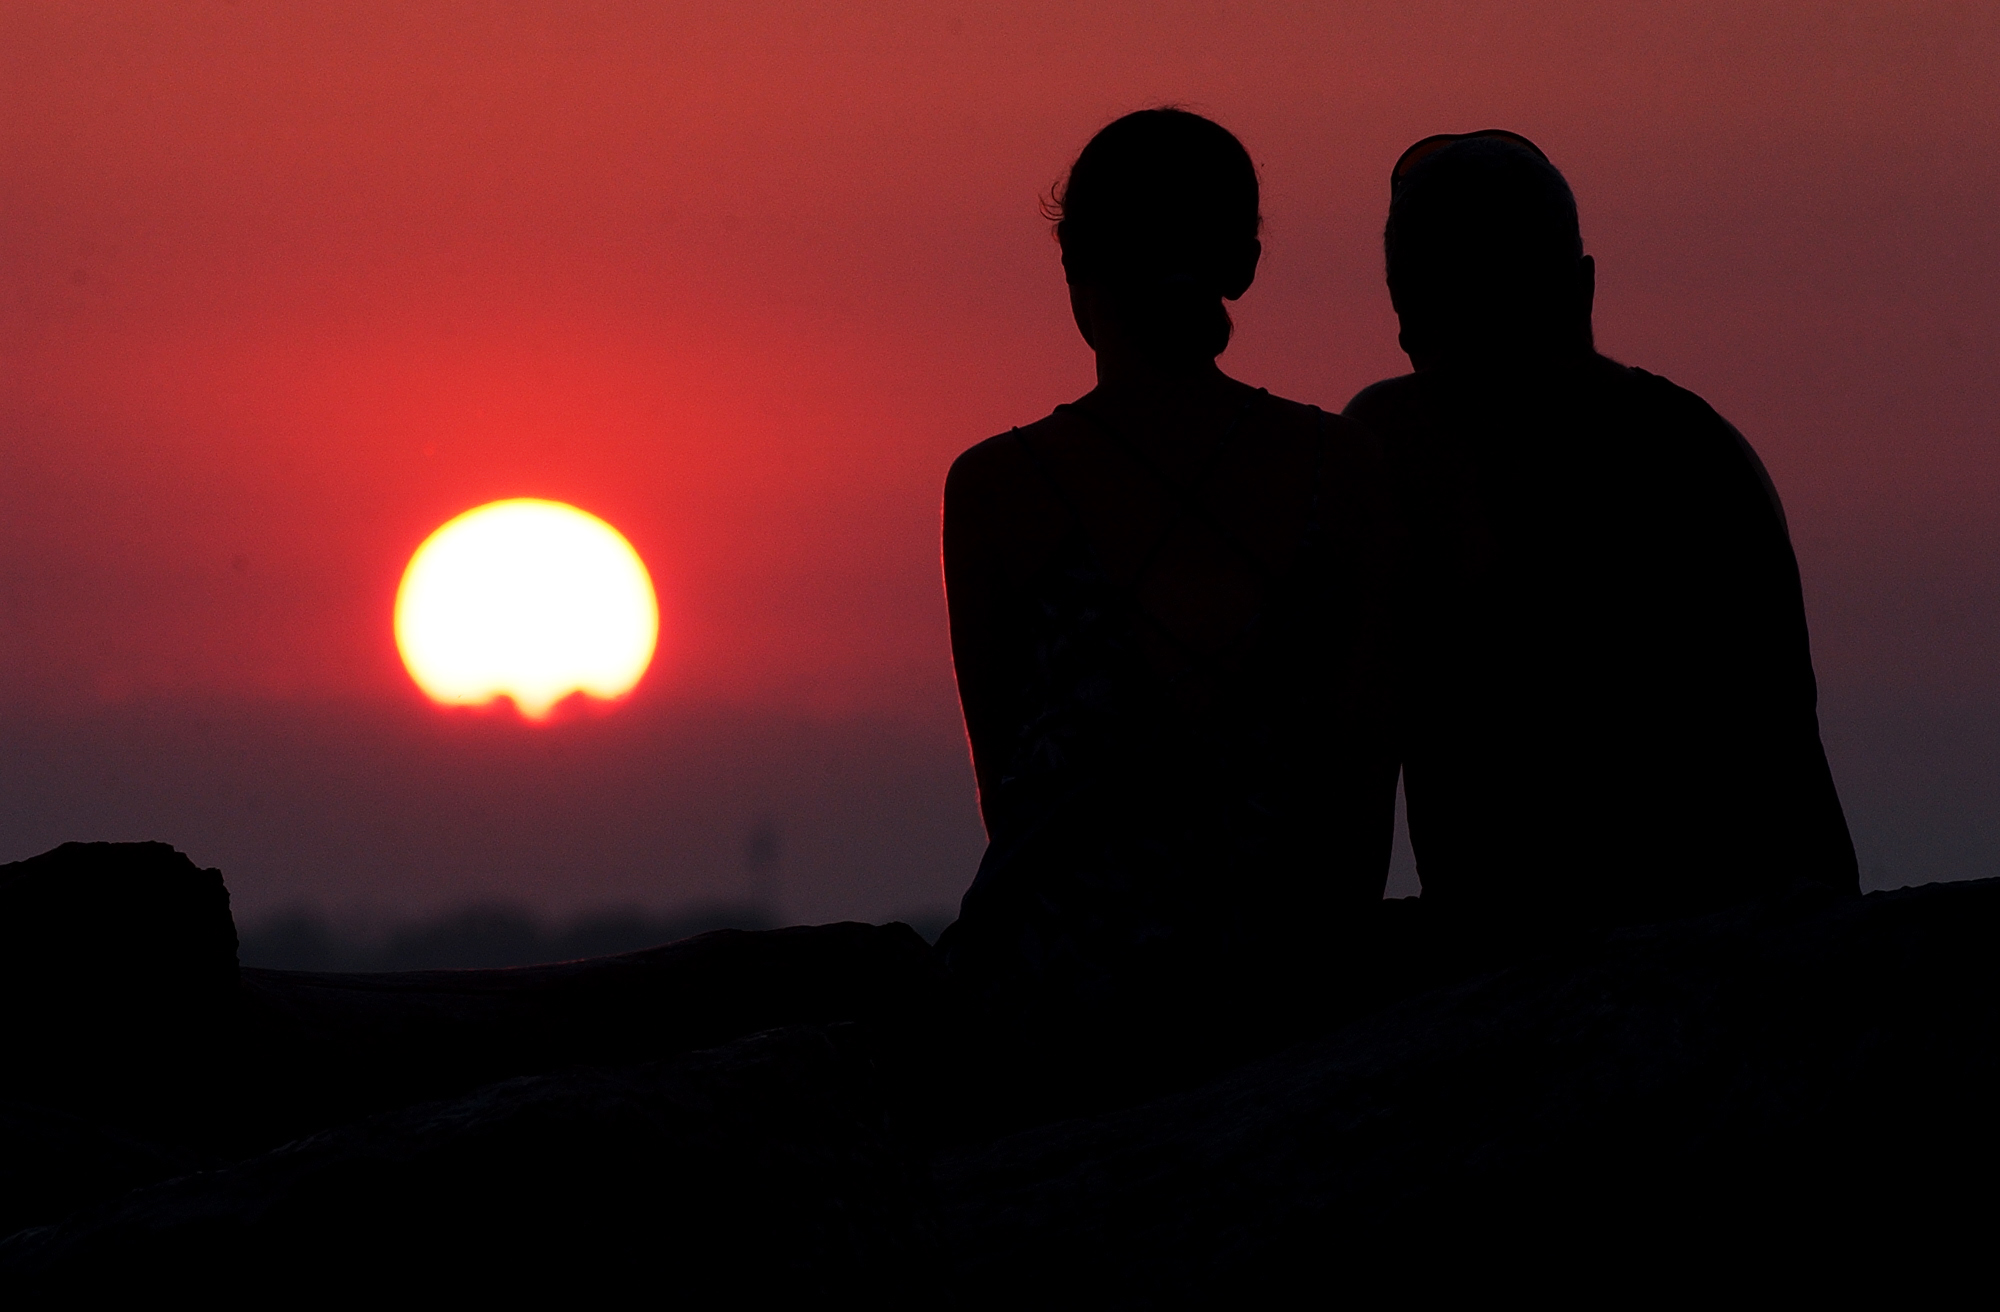 A couple enjoys the sunset at Erie Basin Marina in Buffalo, which ranked 116 out of 150 U.S. cities as a place to retire. (Buffalo News file photo)